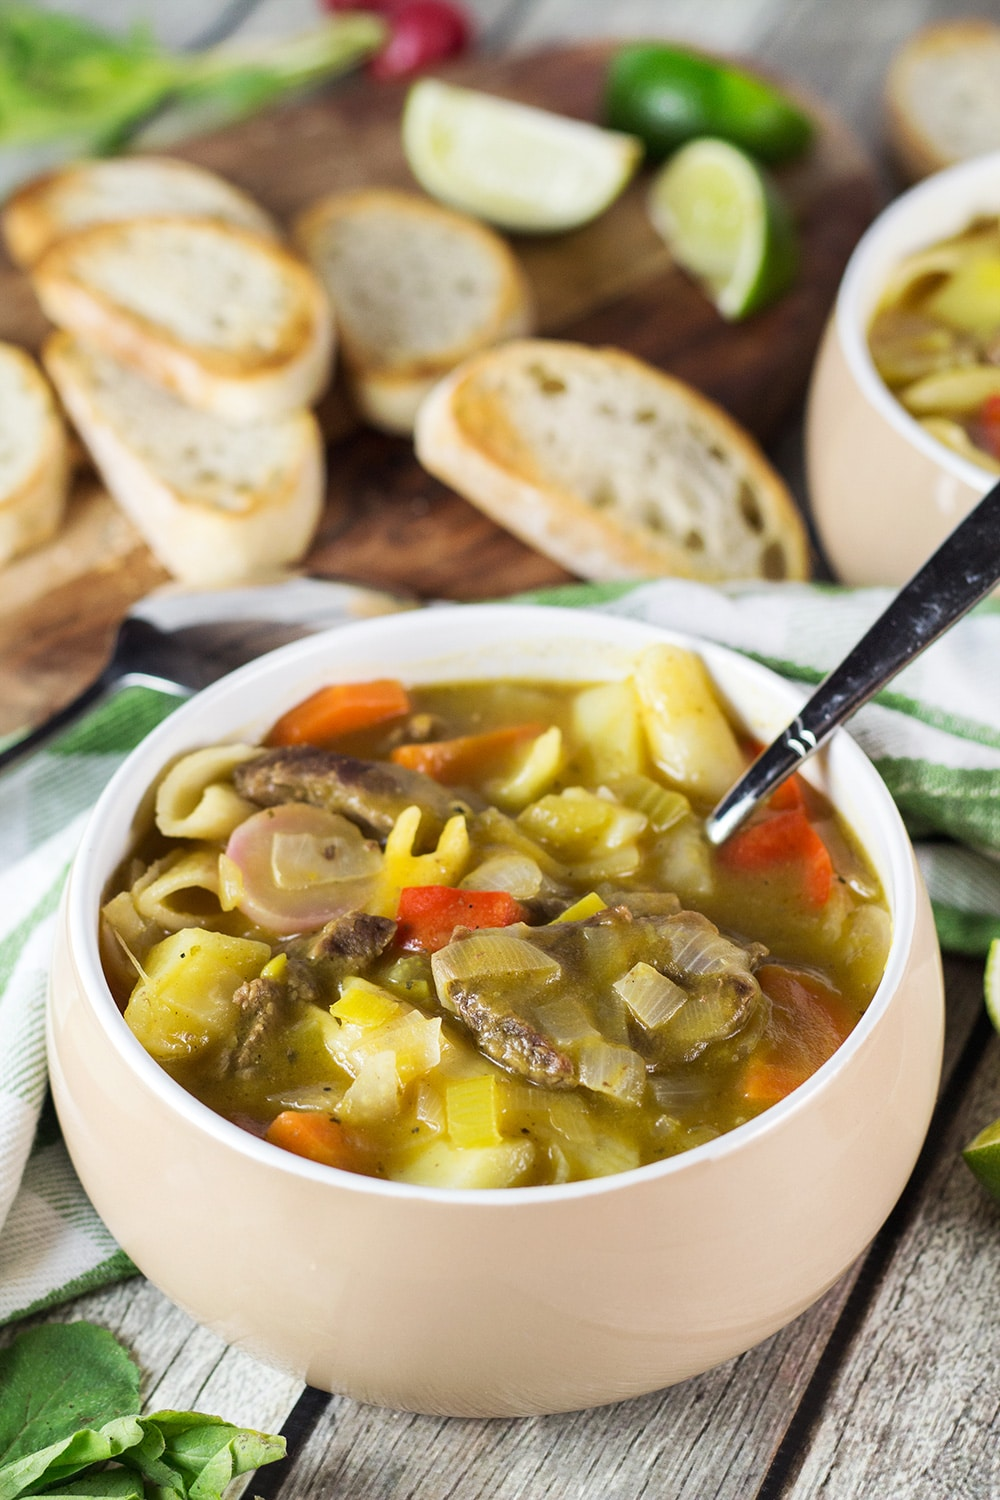 Soup Joumou is a traditional Haitian pumpkin soup packed with 11 different veggies, beef, and pasta. Hearty, comforting, and crazy delicious!   cookingtheglobe.com